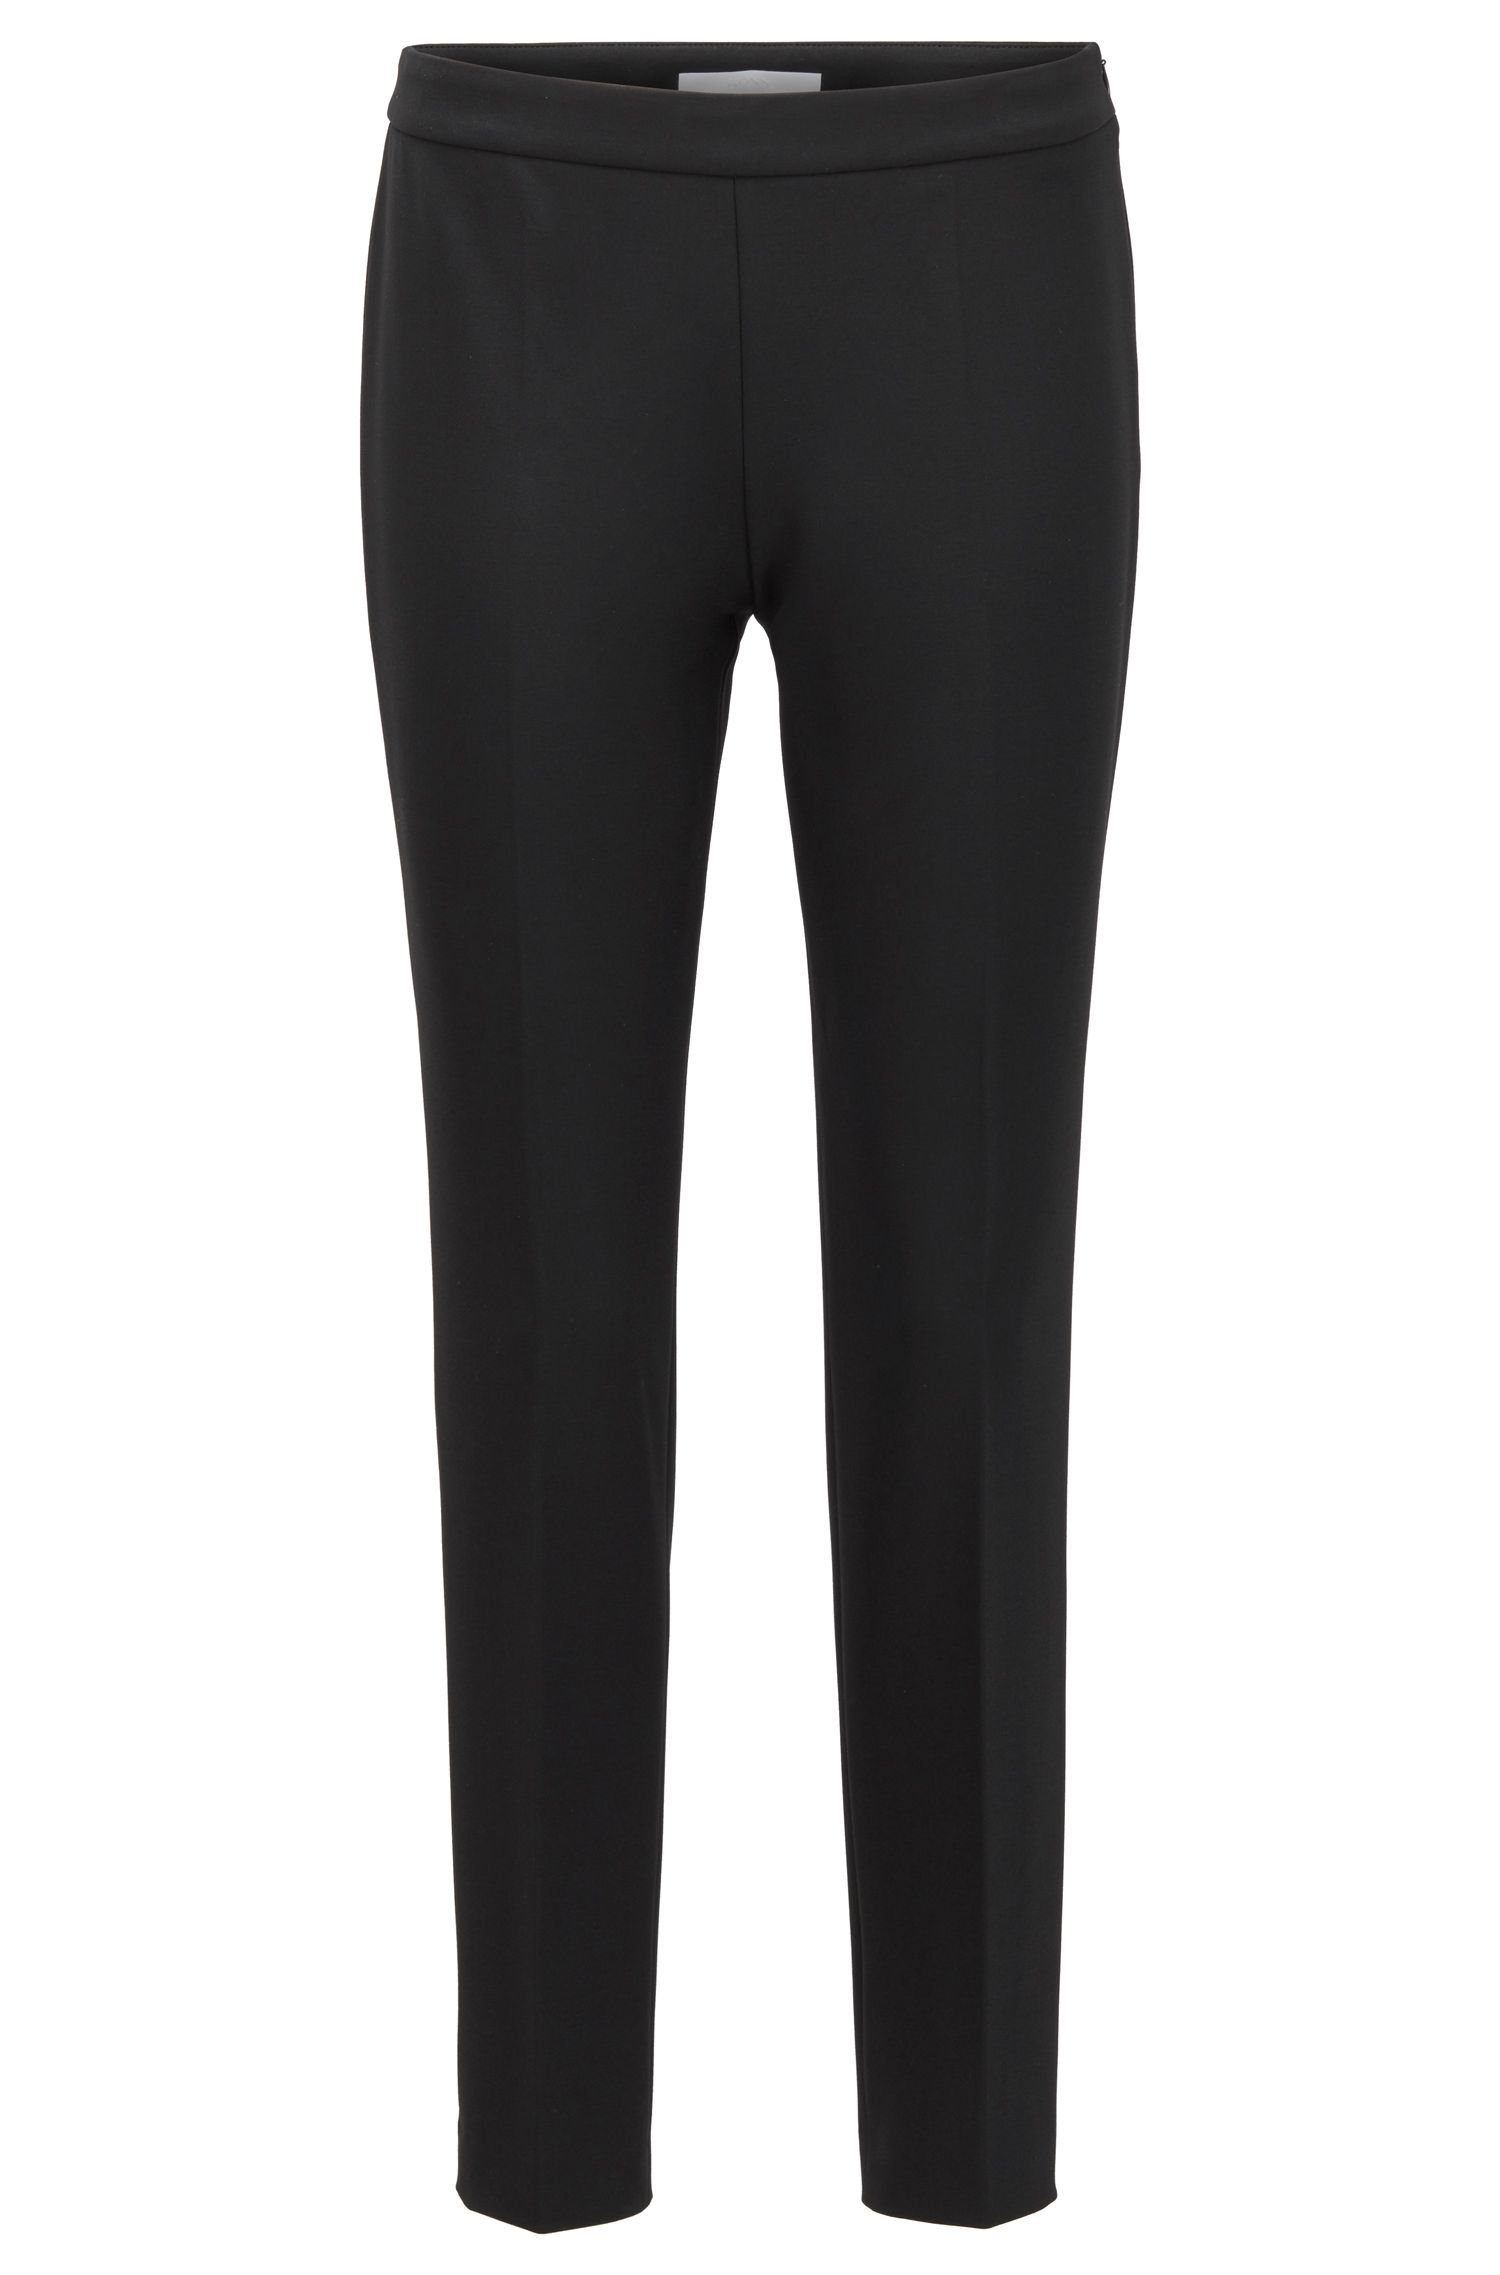 Slim-leg cropped trousers in Portuguese stretch fabric, Black